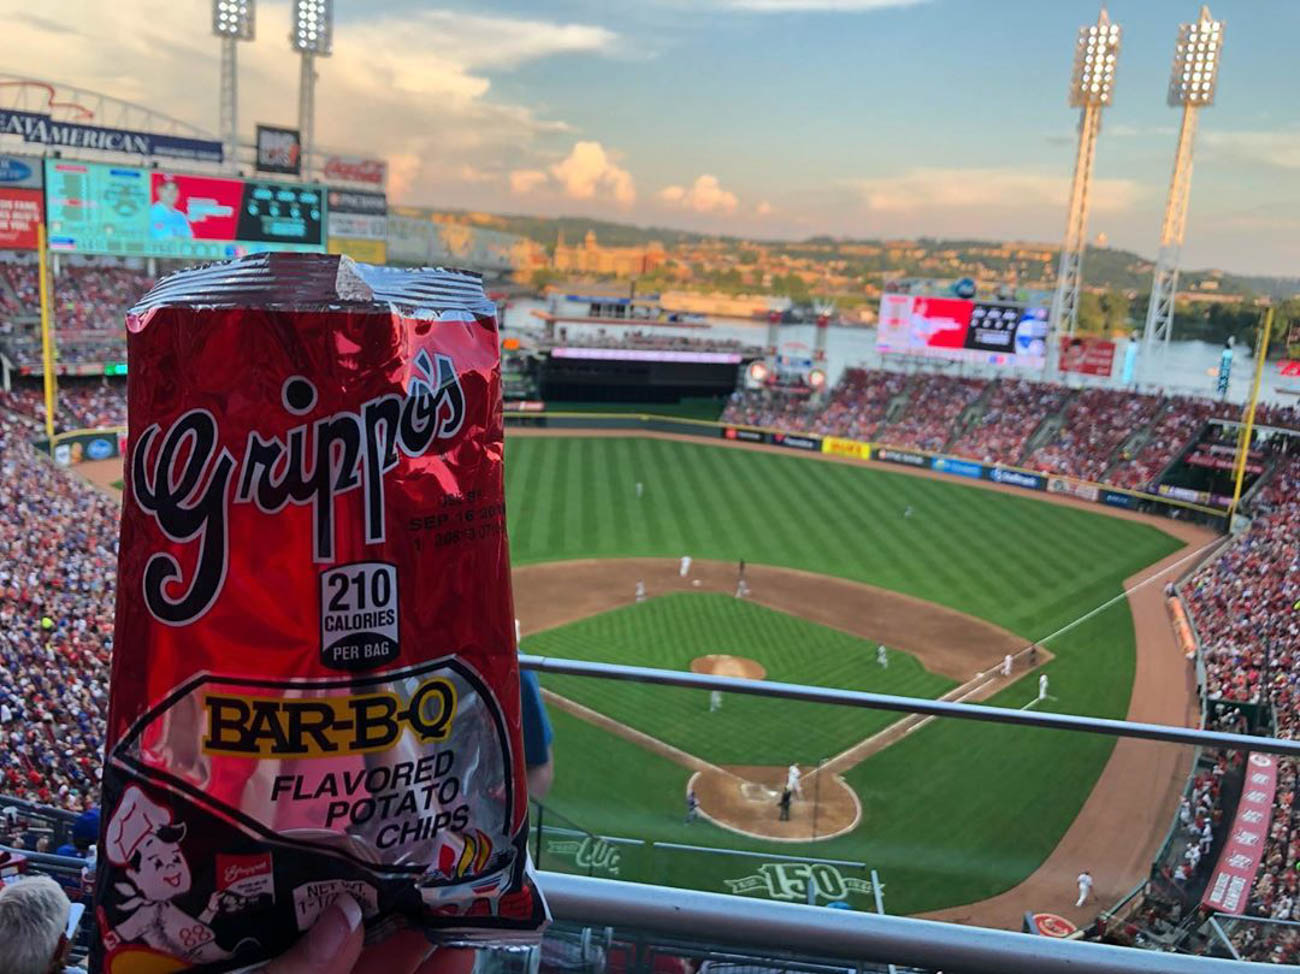 Modeling tasty snacks at the Reds game, too... / Image courtesy of Instagram user @ironmanforgotr  // Published: 9.23.19